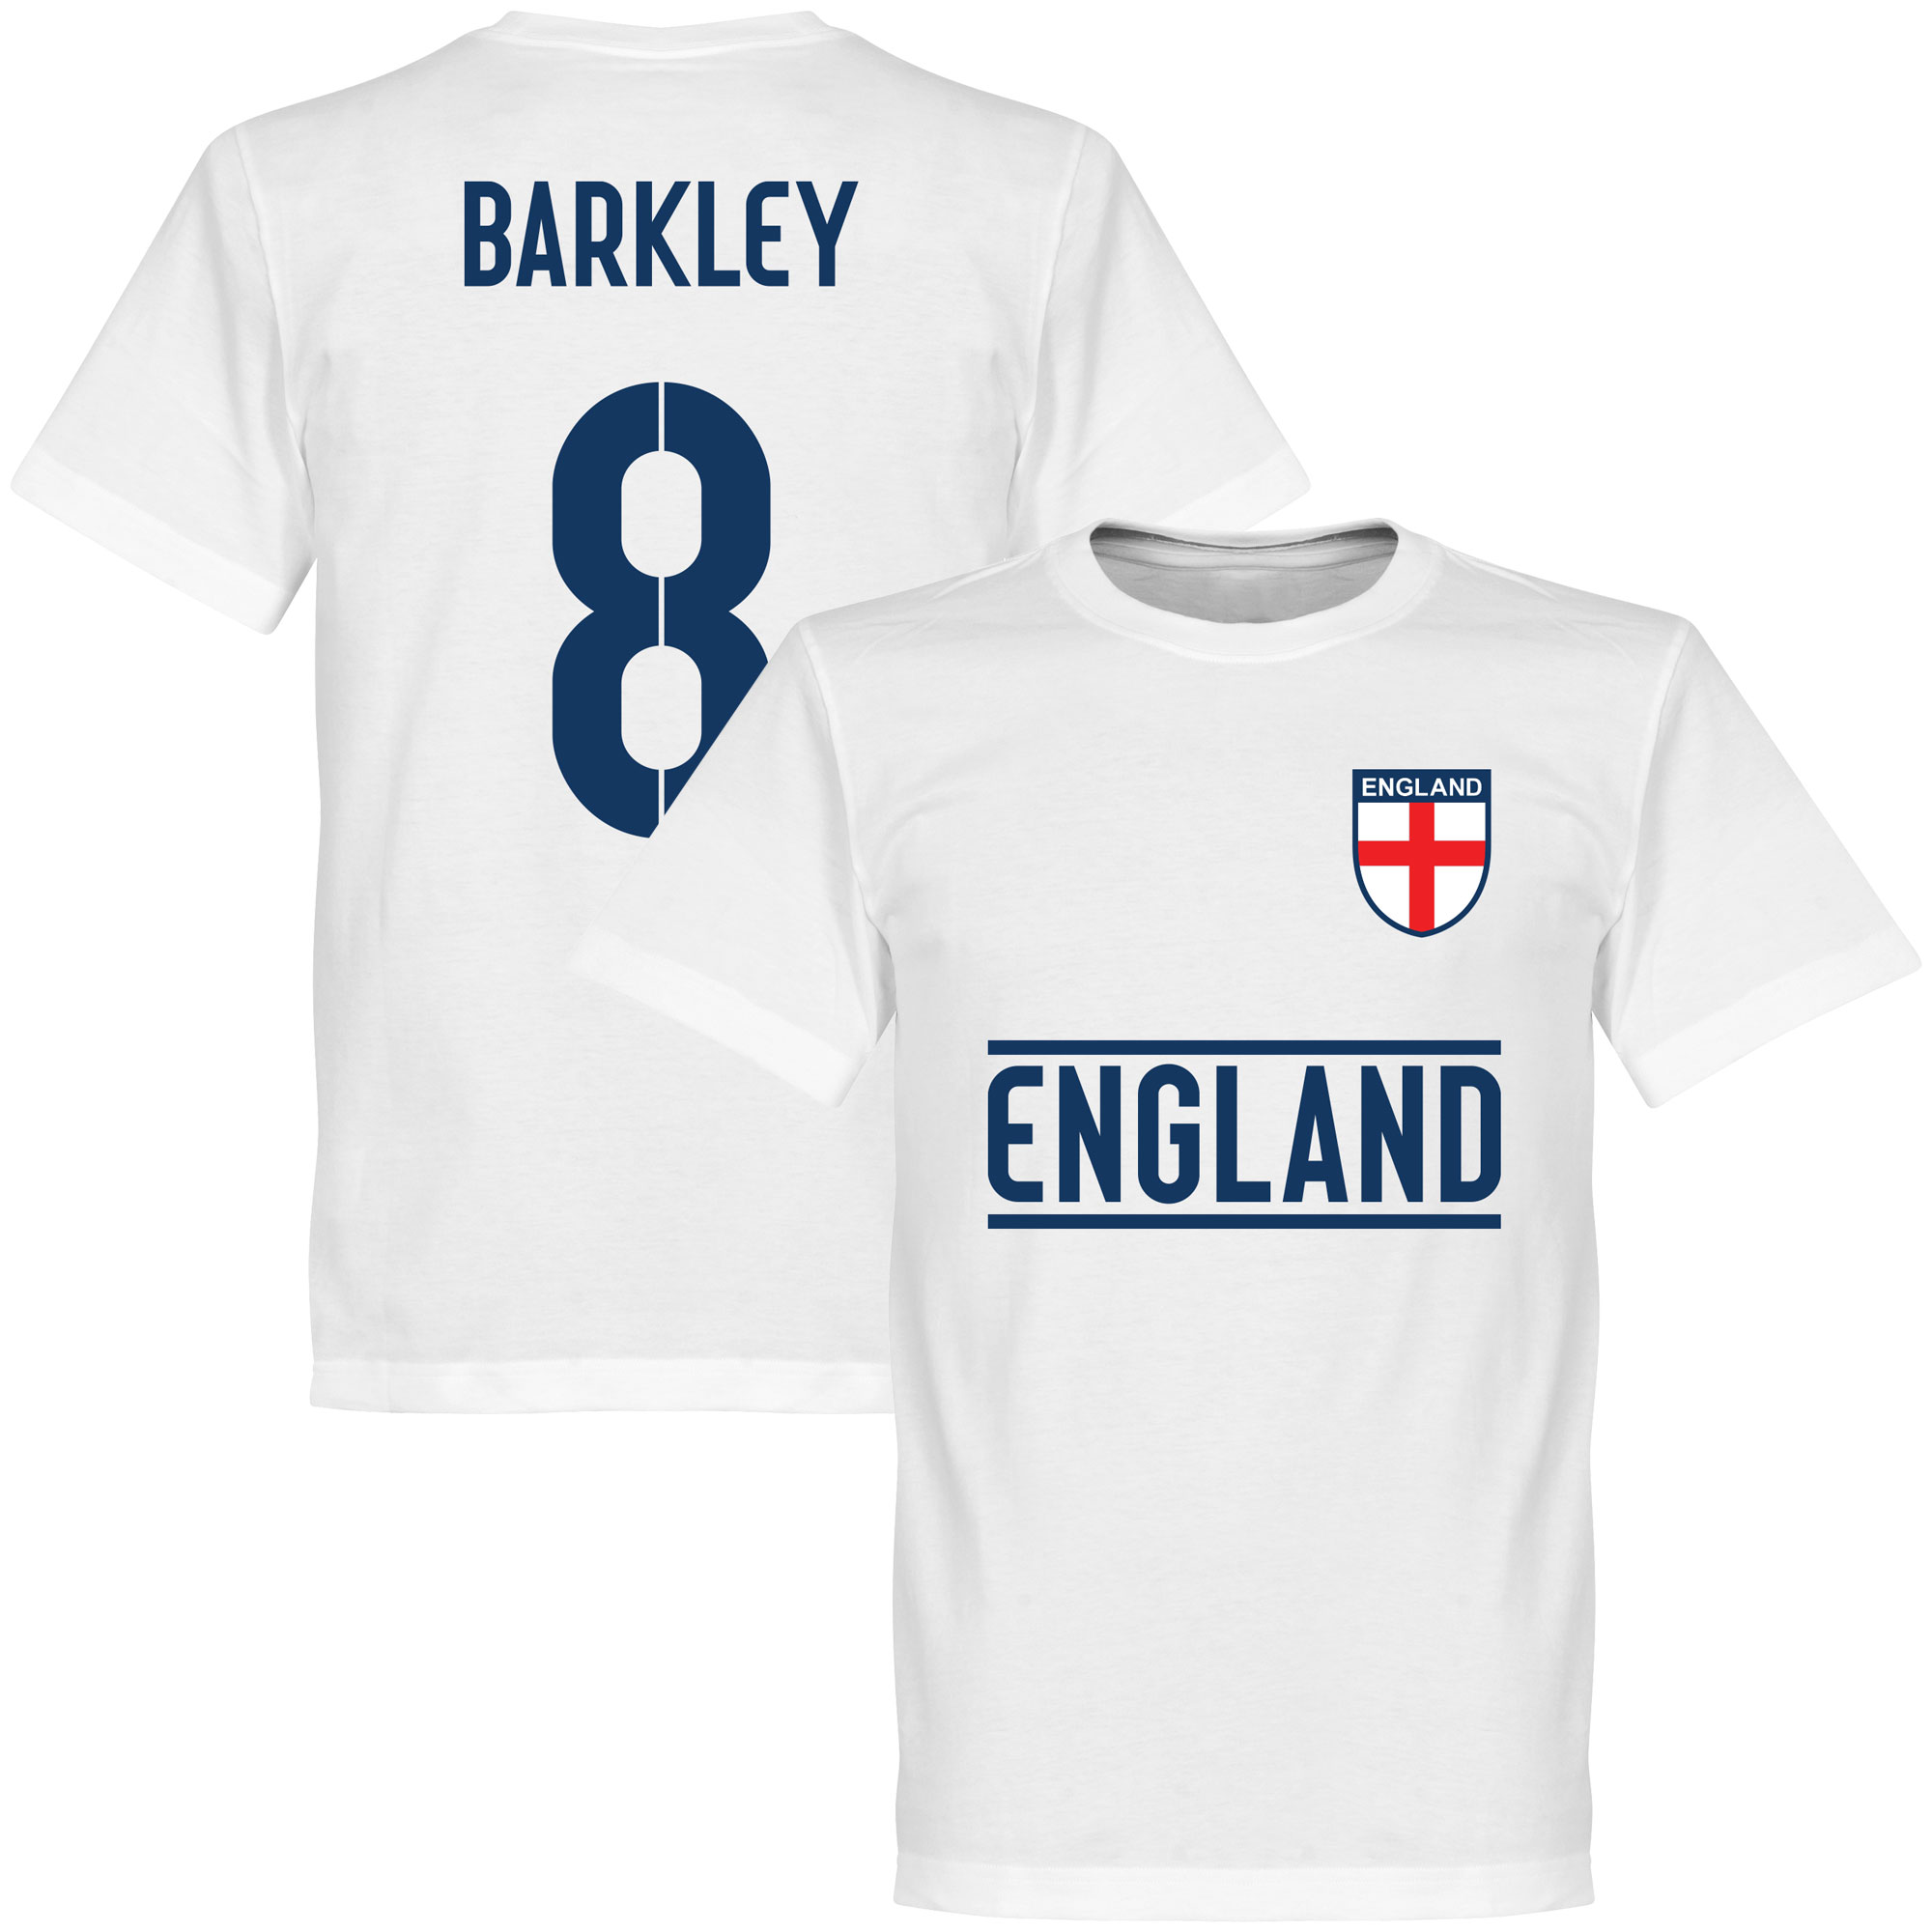 England Barkley 8 Team Tee - White - XXXL